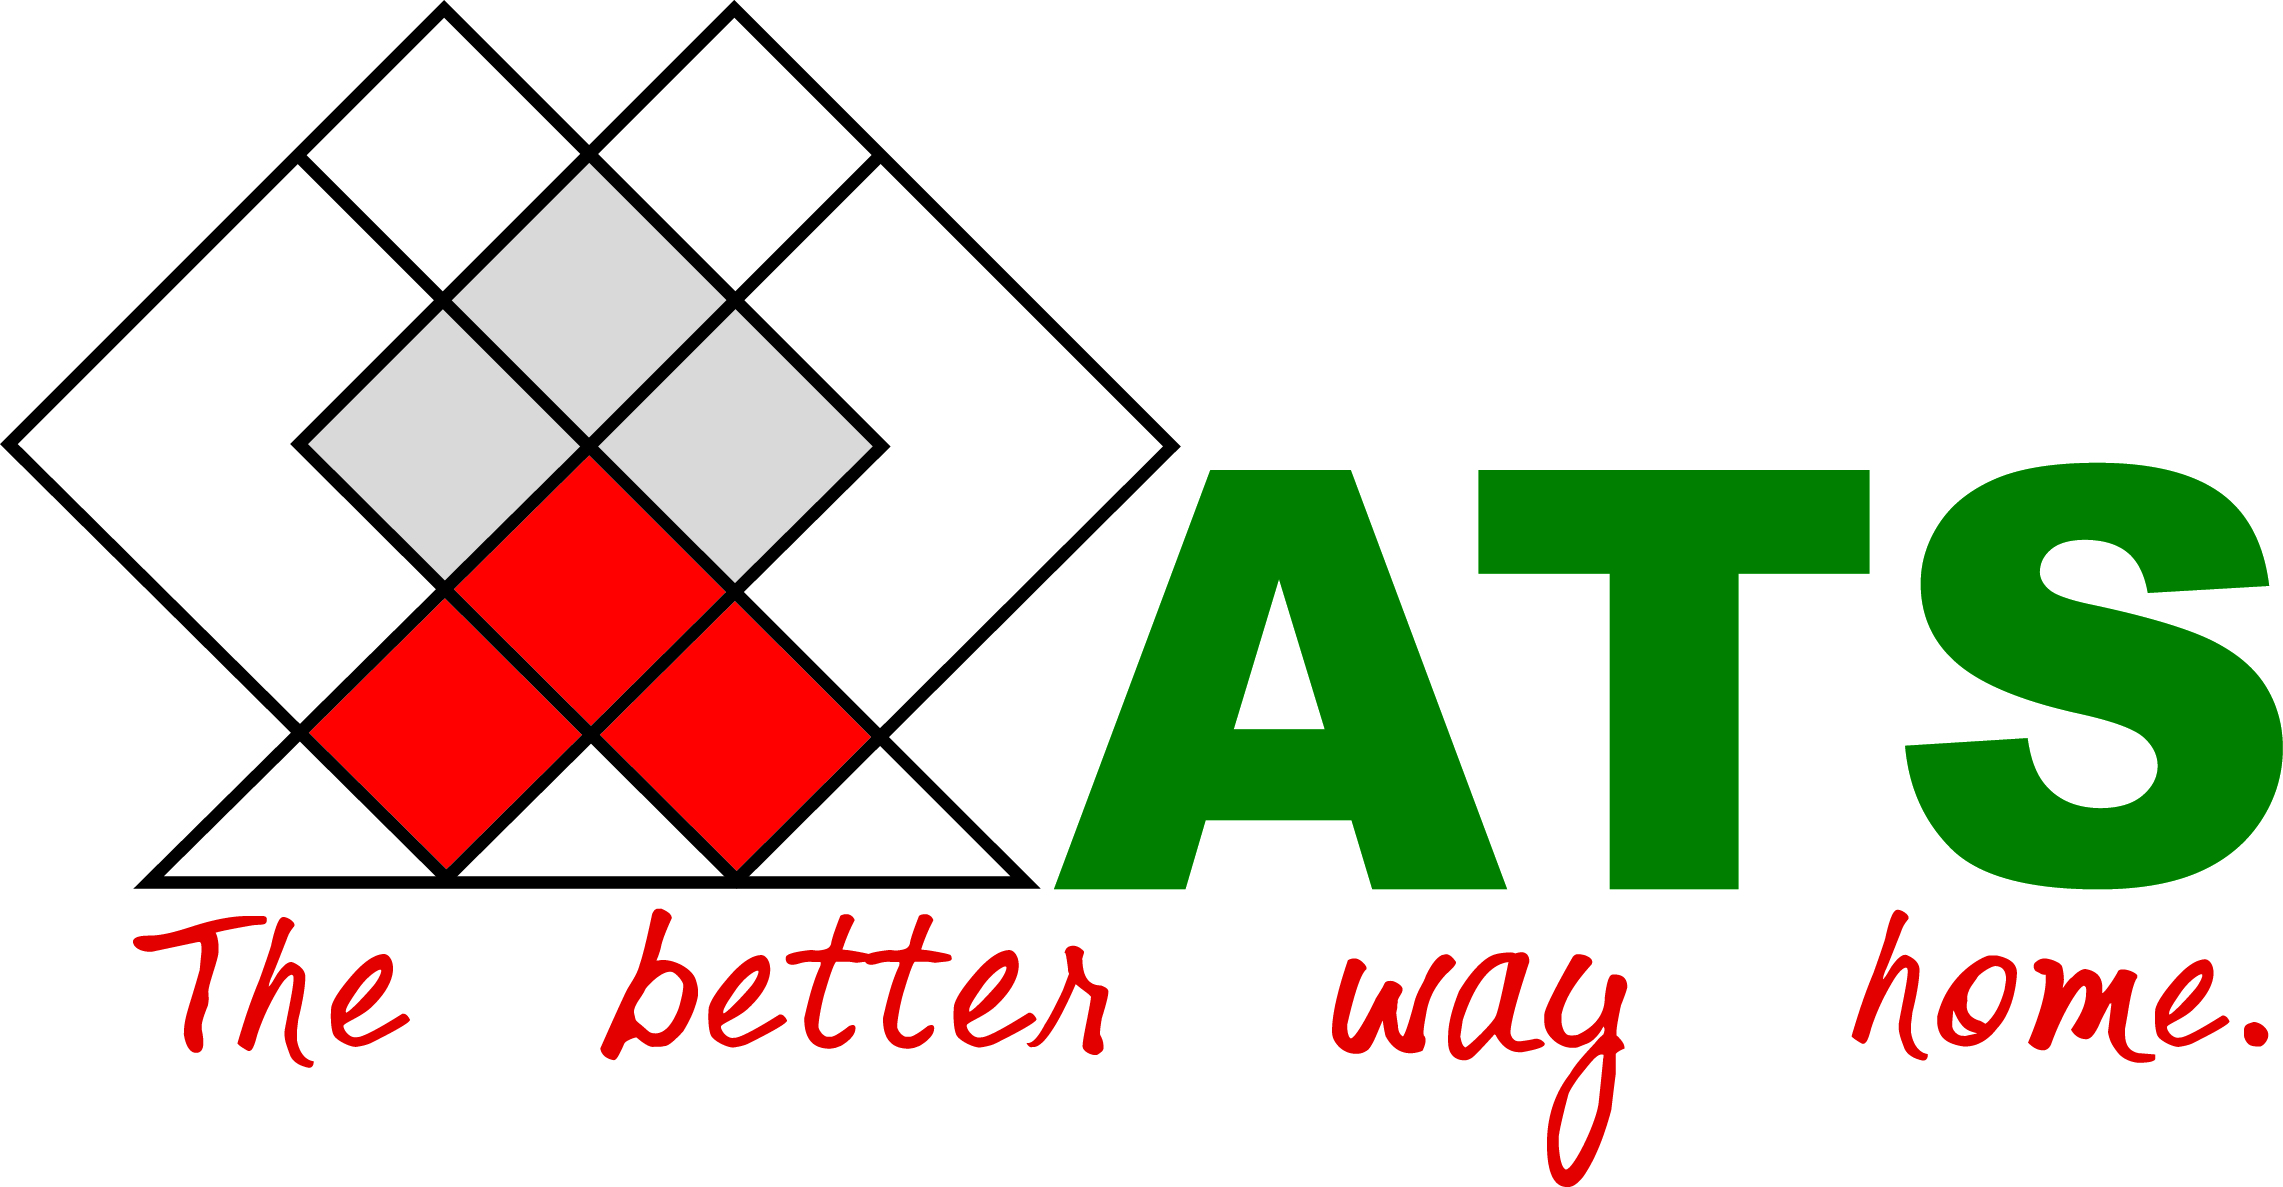 ATS Infrastructure, Geetamber Anand, Noida real estate, IIM, Indian Institute of Management, Indian property market, India real estate news, Indian realty news, Track2Media Research Pvt Ltd, Track2Realty